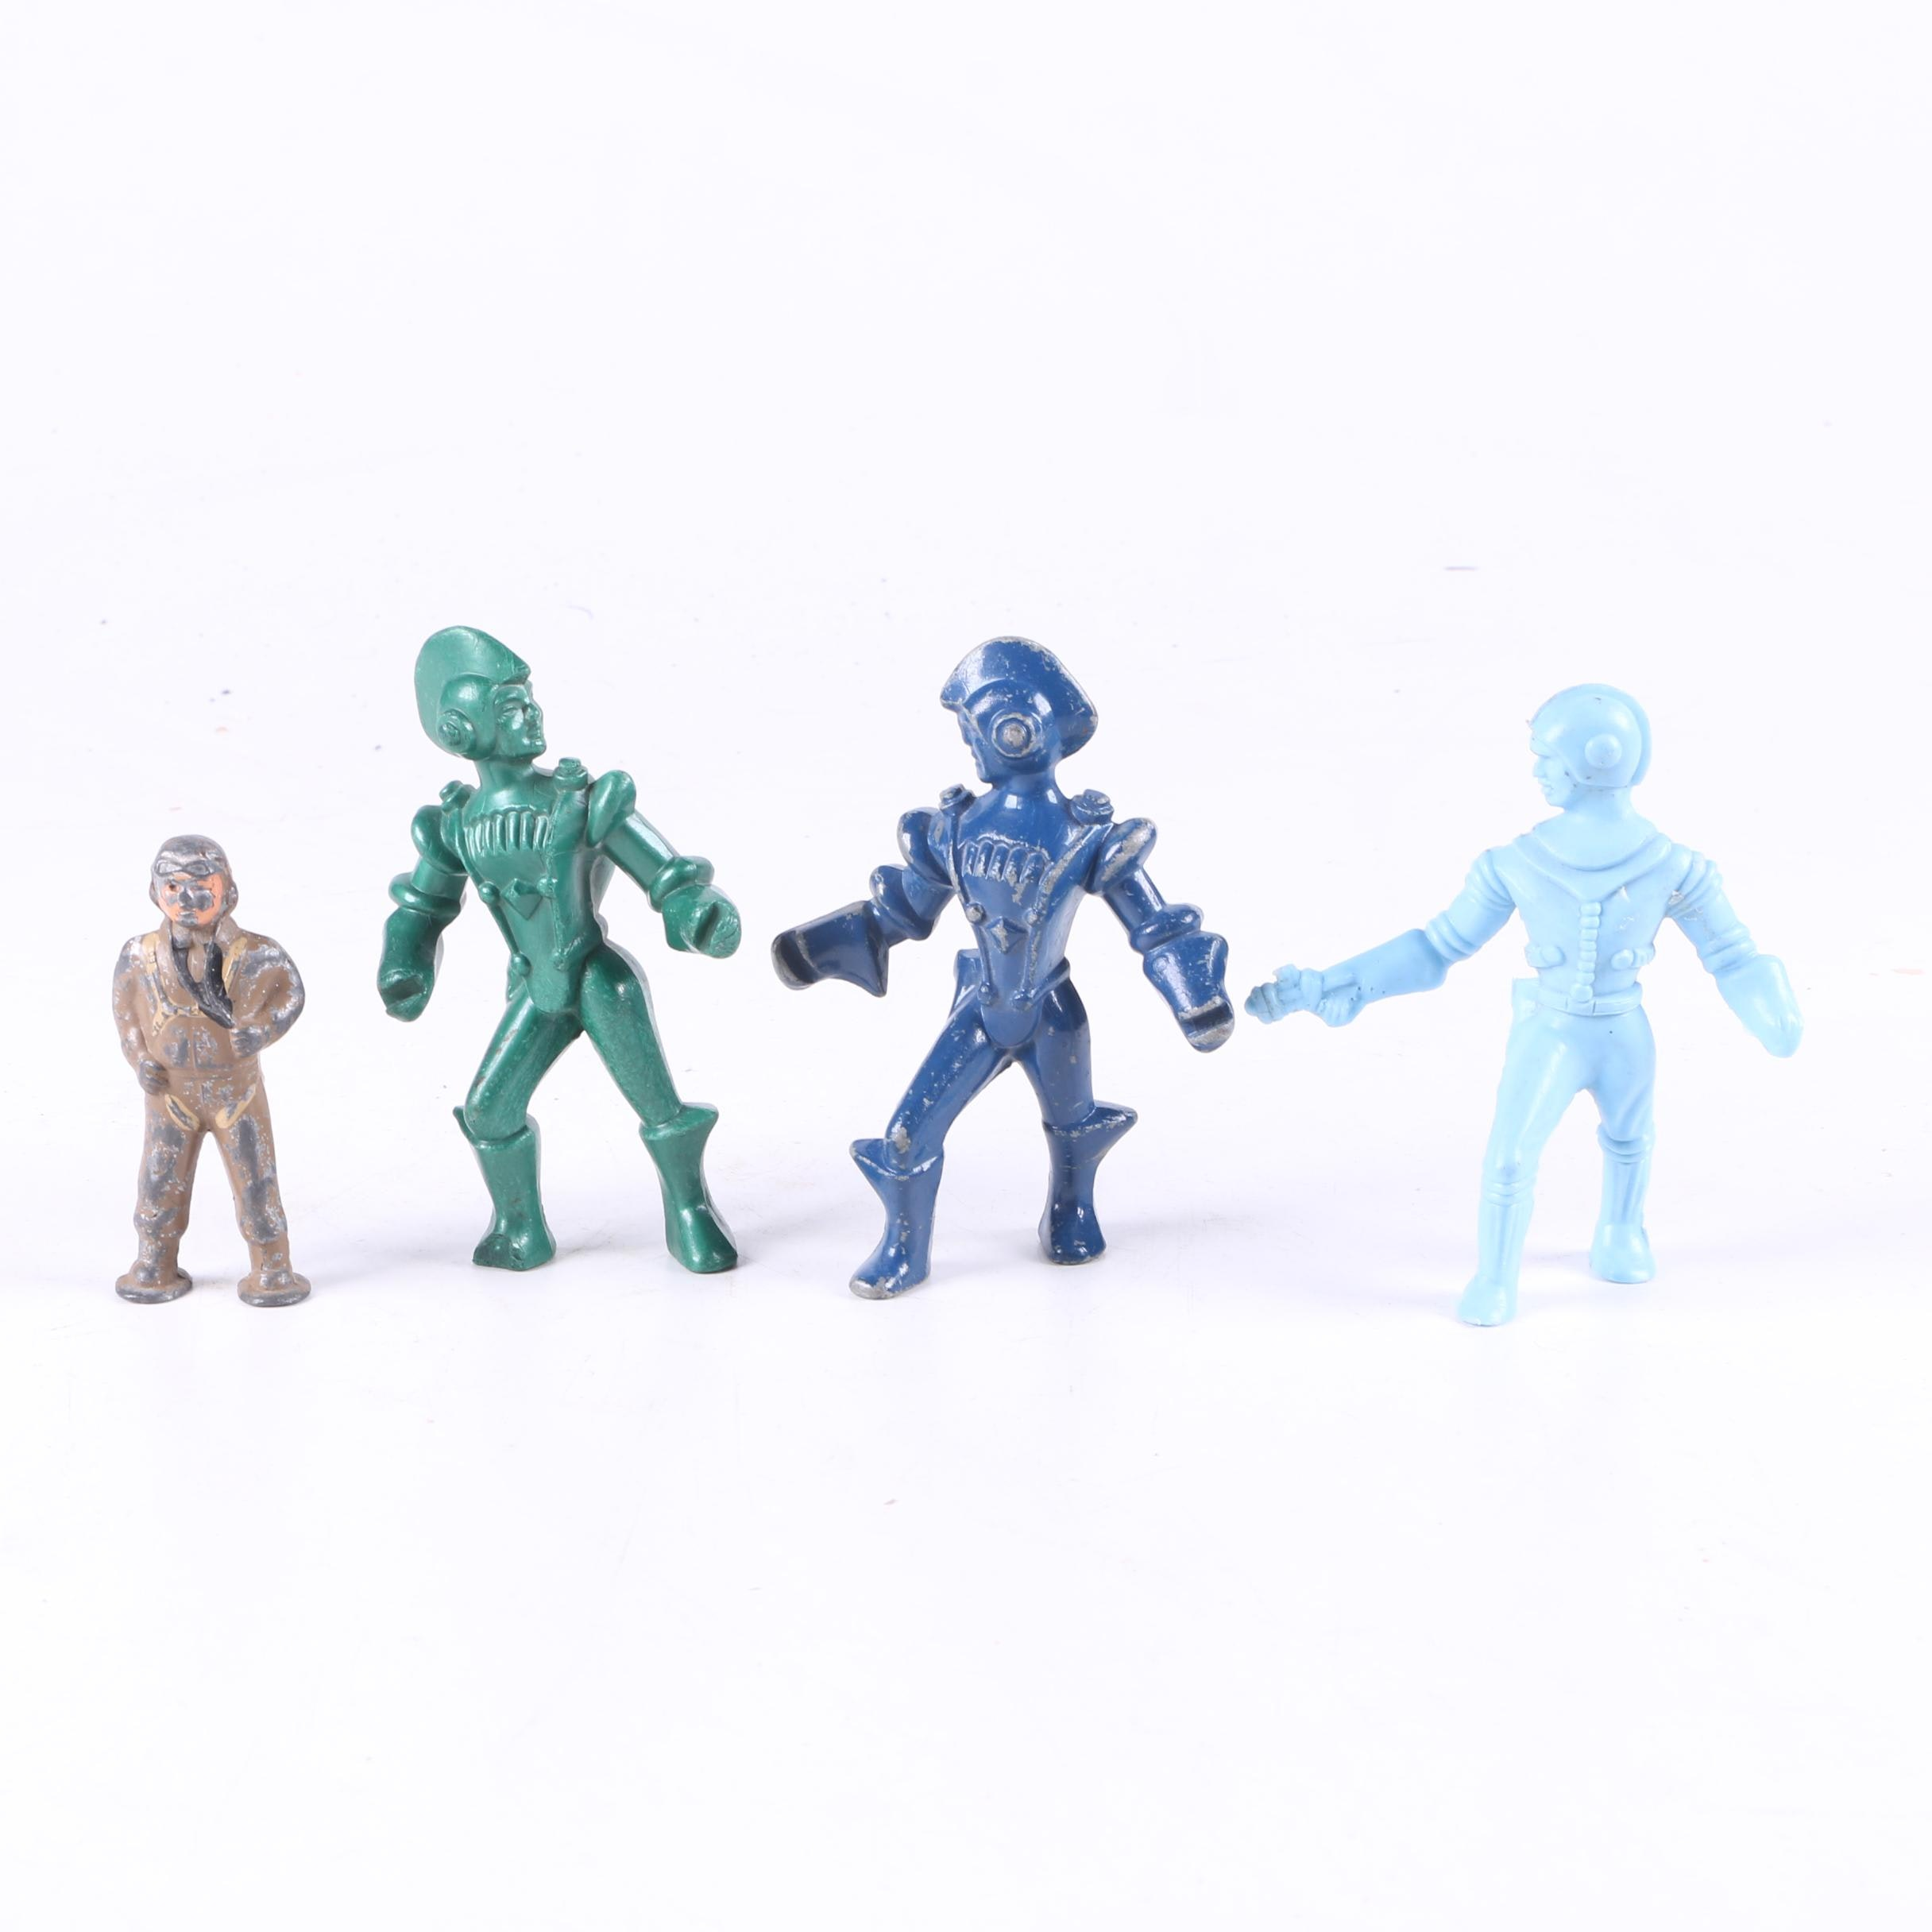 Collection of Vintage Toy Space and Military Figures